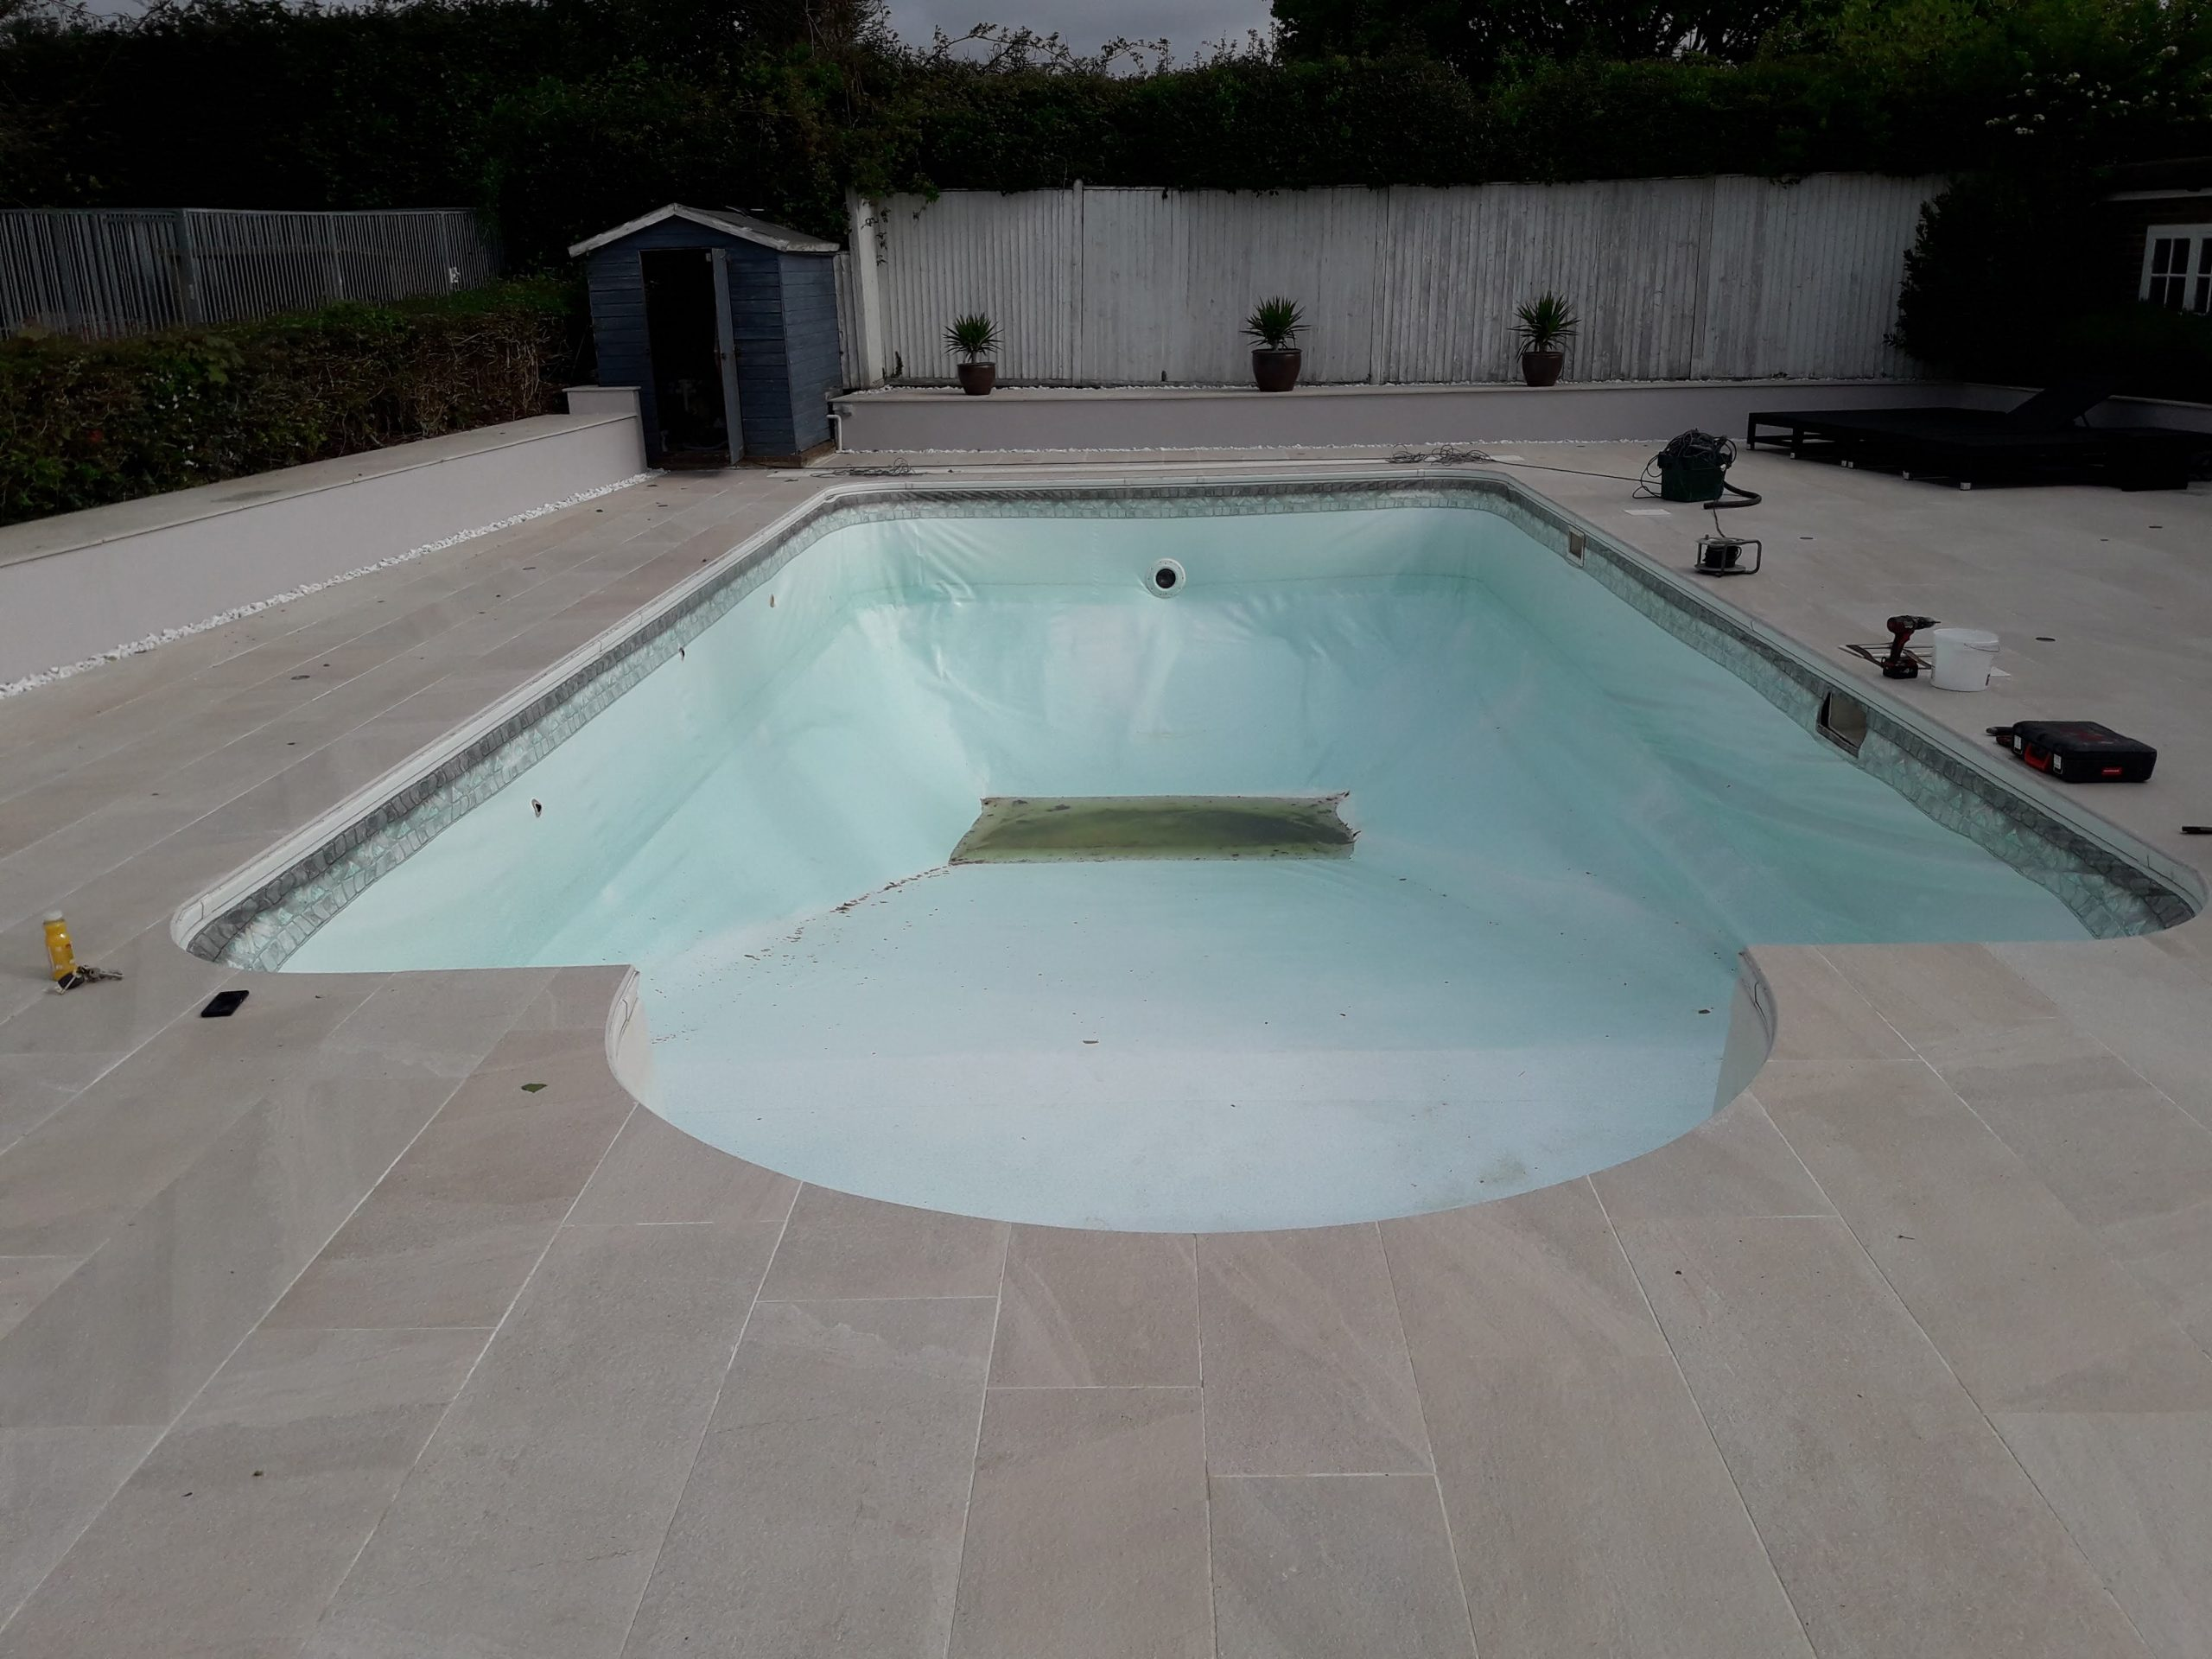 A pool that is in need of retiling and renovation